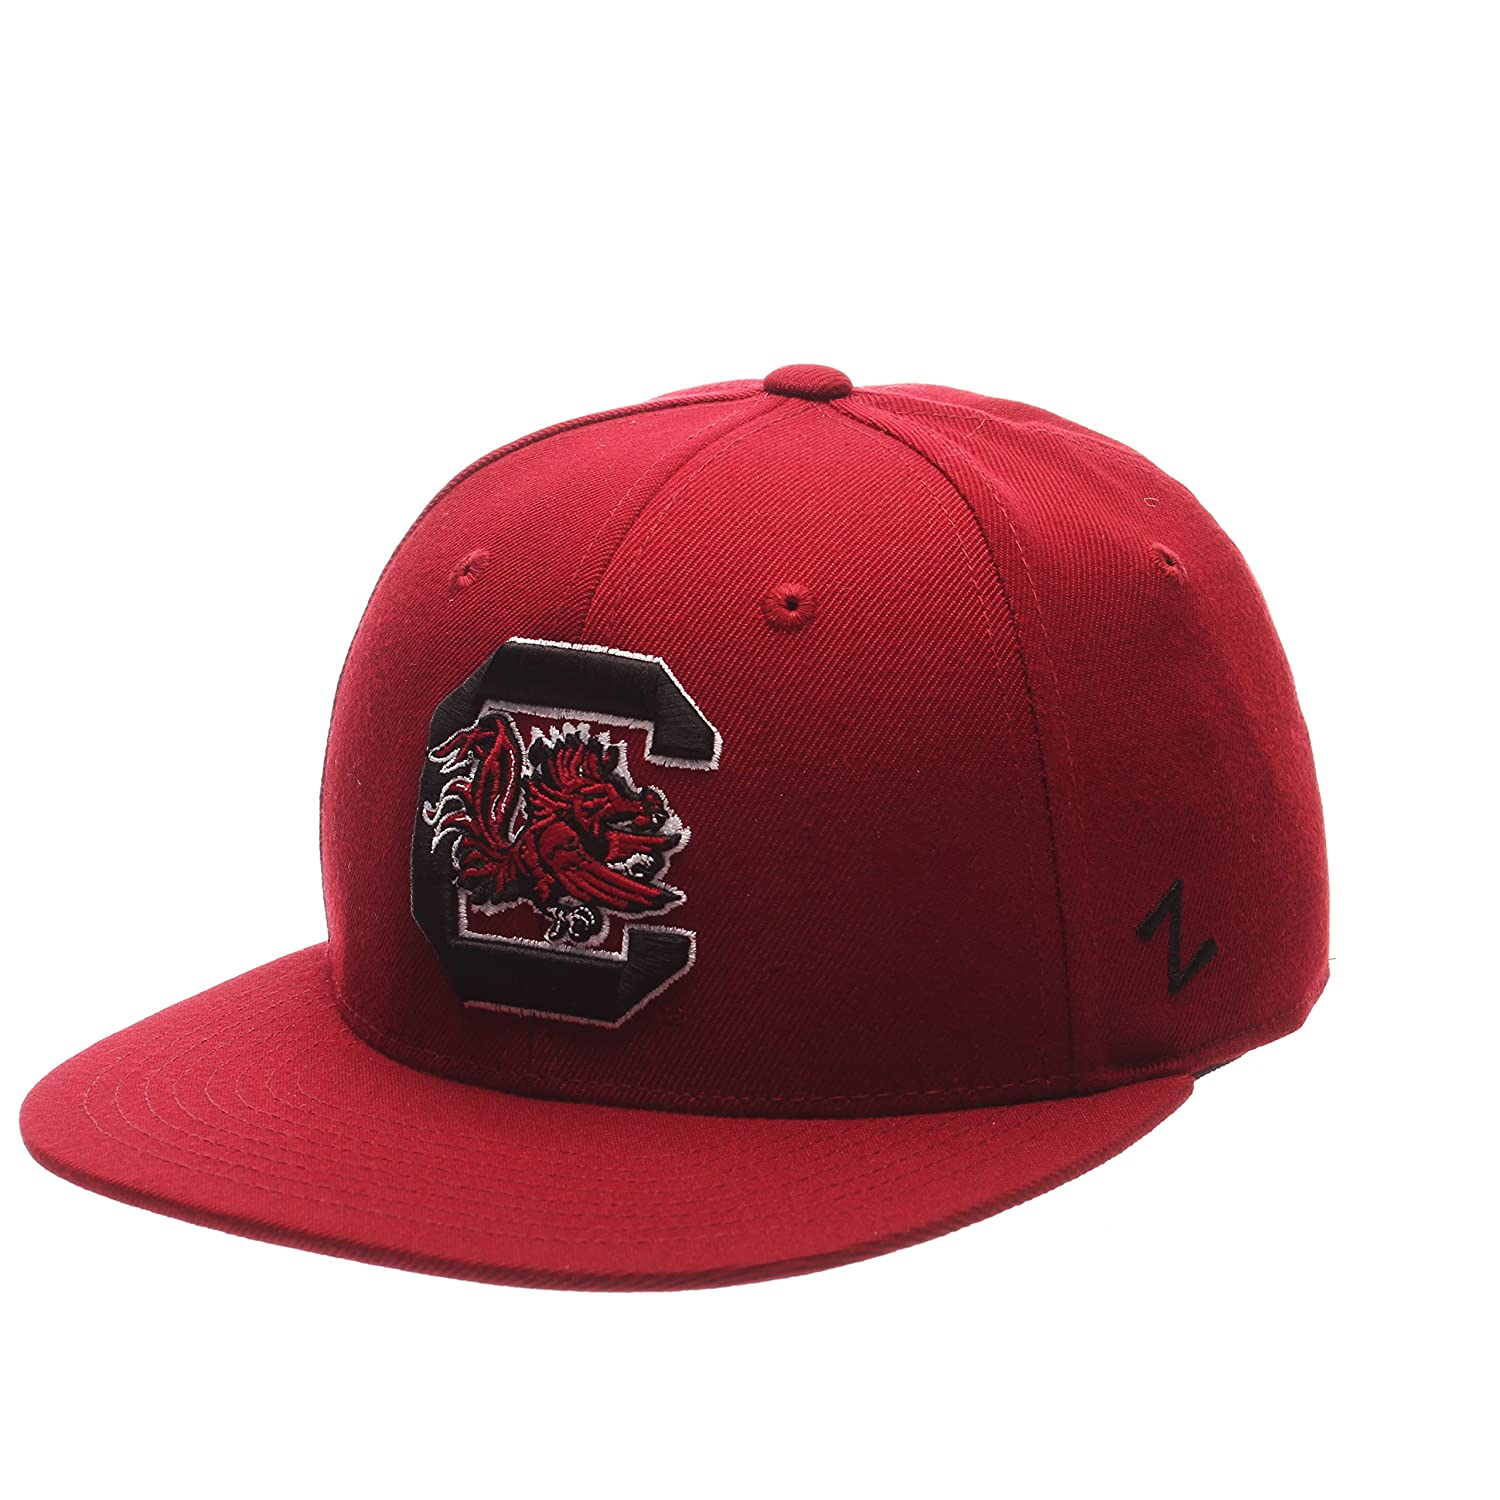 ZHATS NCAA Mens M15 Fitted Hat